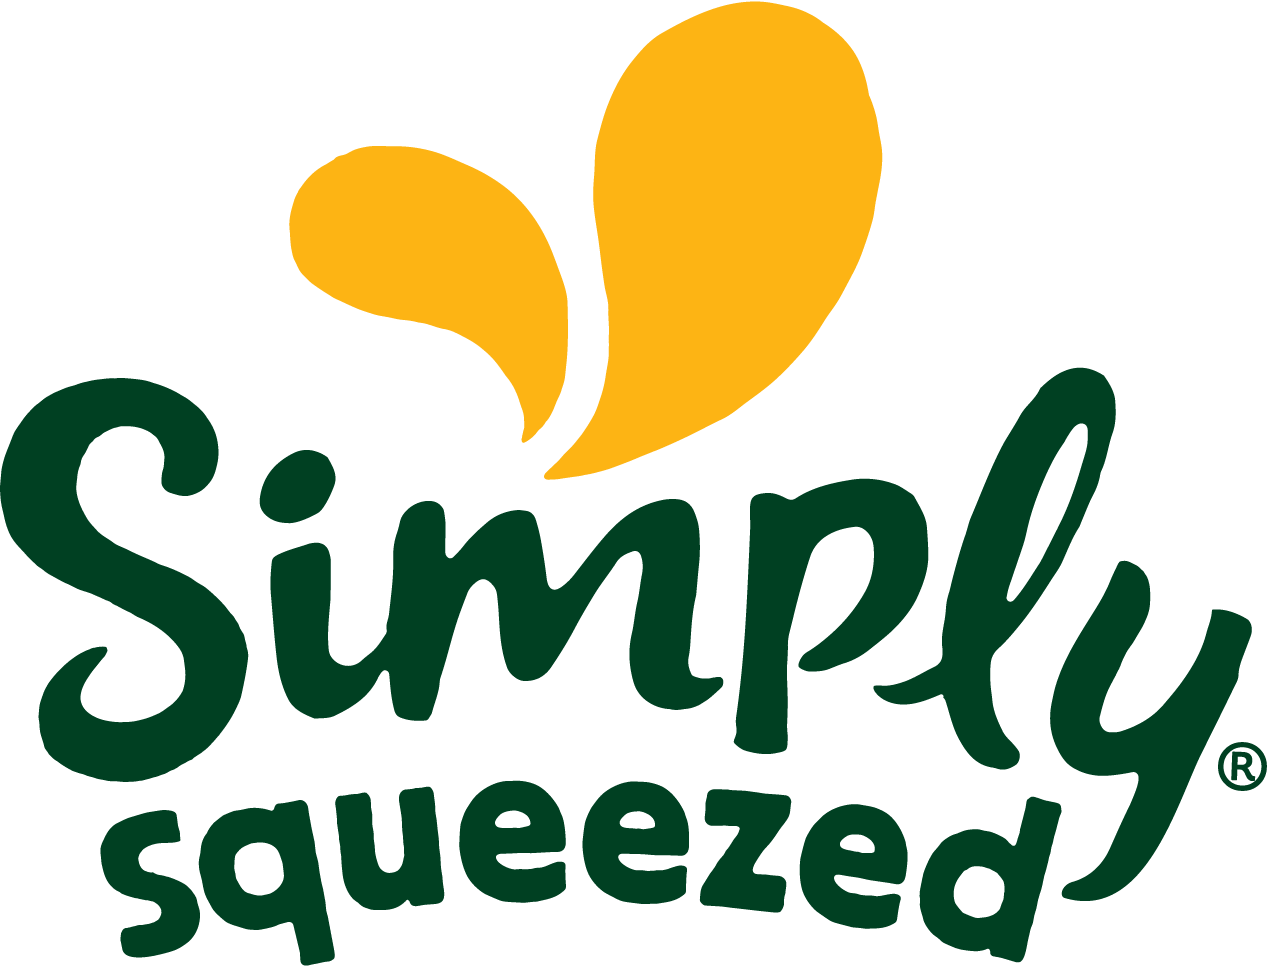 Simply Squeezed